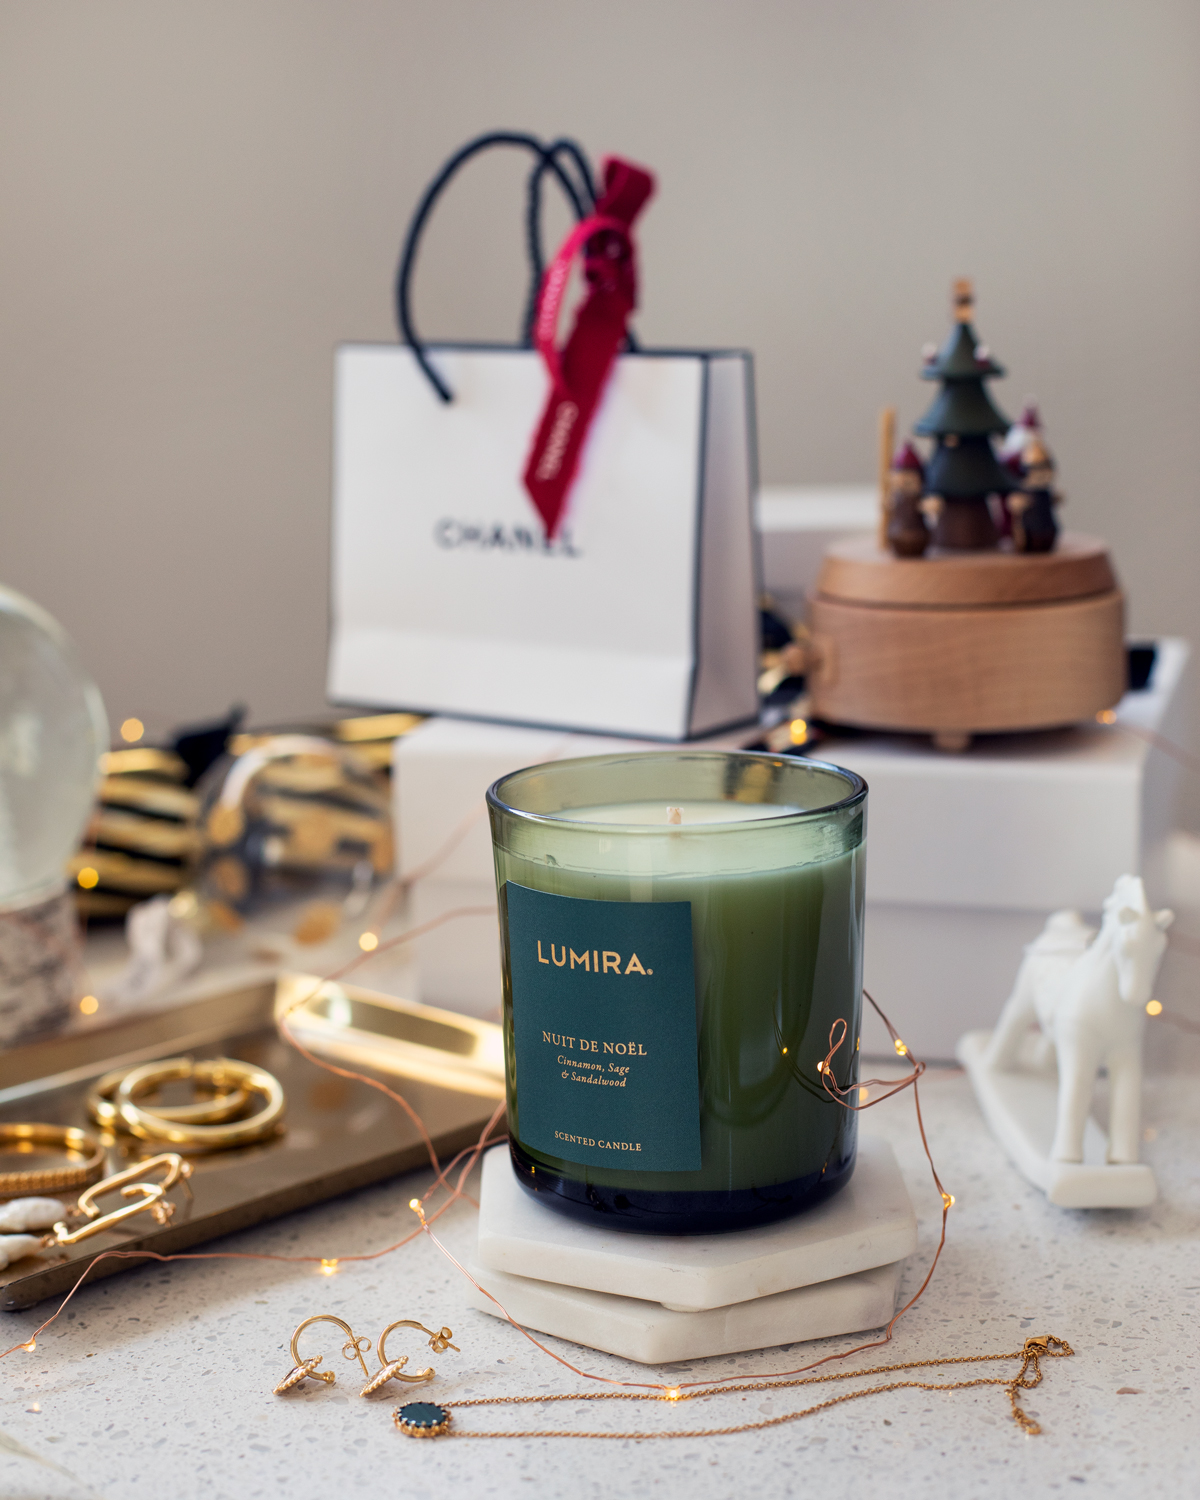 2018 Christmas gift guide Inspiring Wit blog featuring women's and lifestyle gift ideas for the home with the Lumira Nuit de Noel limited edition Christmas scented candle